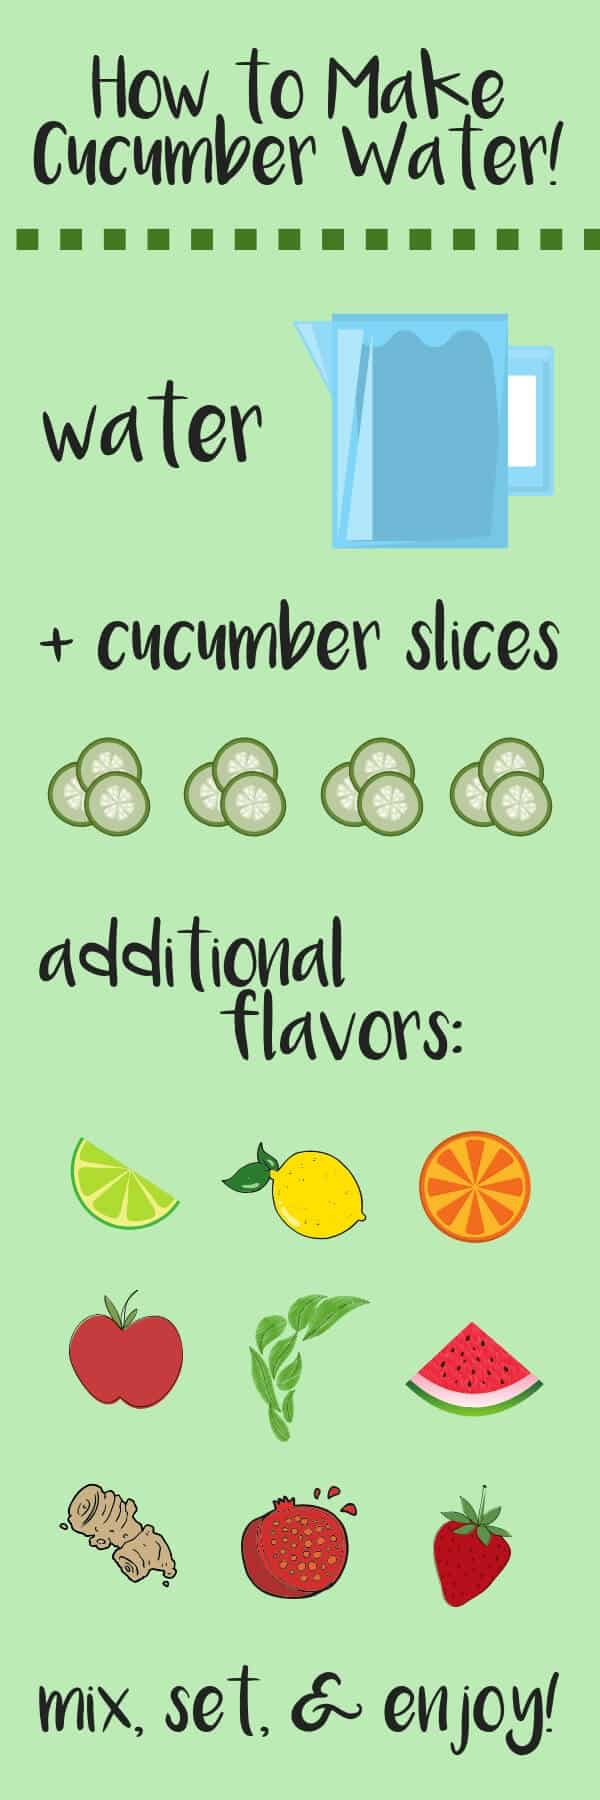 Cucumber Water Recipes: Stay healthy and hydrated with these 14 cucumber water recipes and combinations!